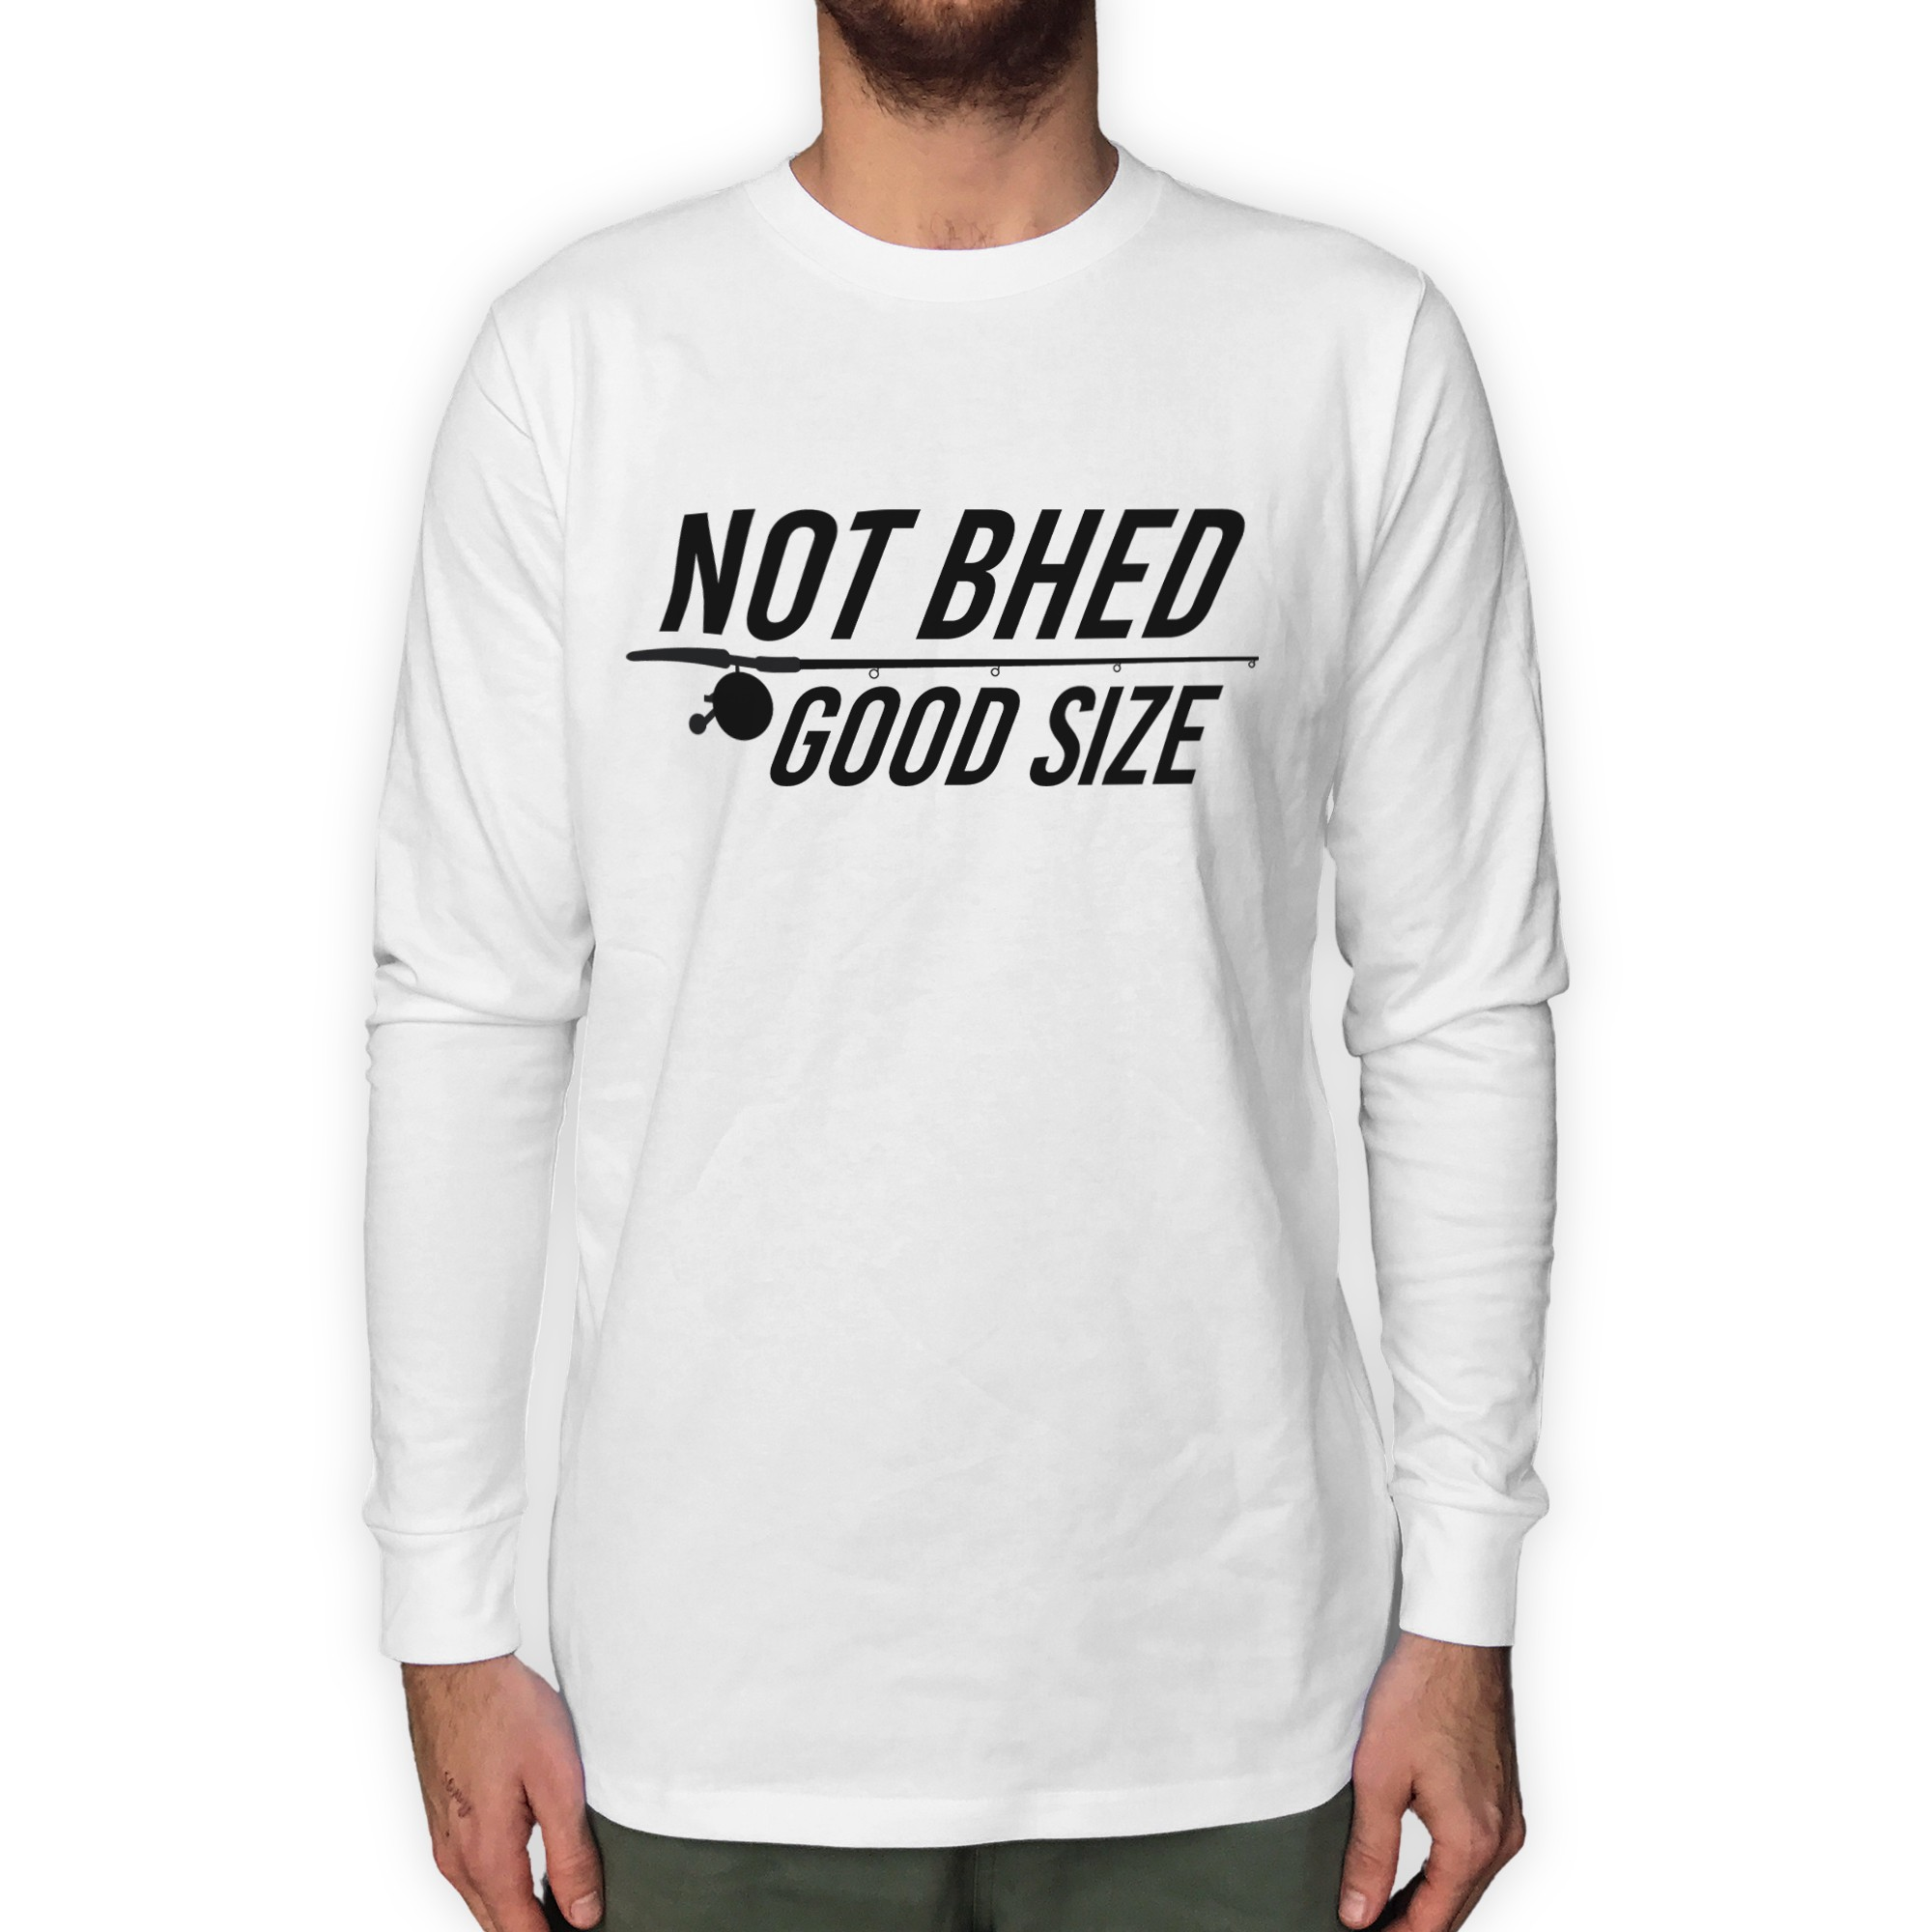 NOT BHED LONGSLEEVE